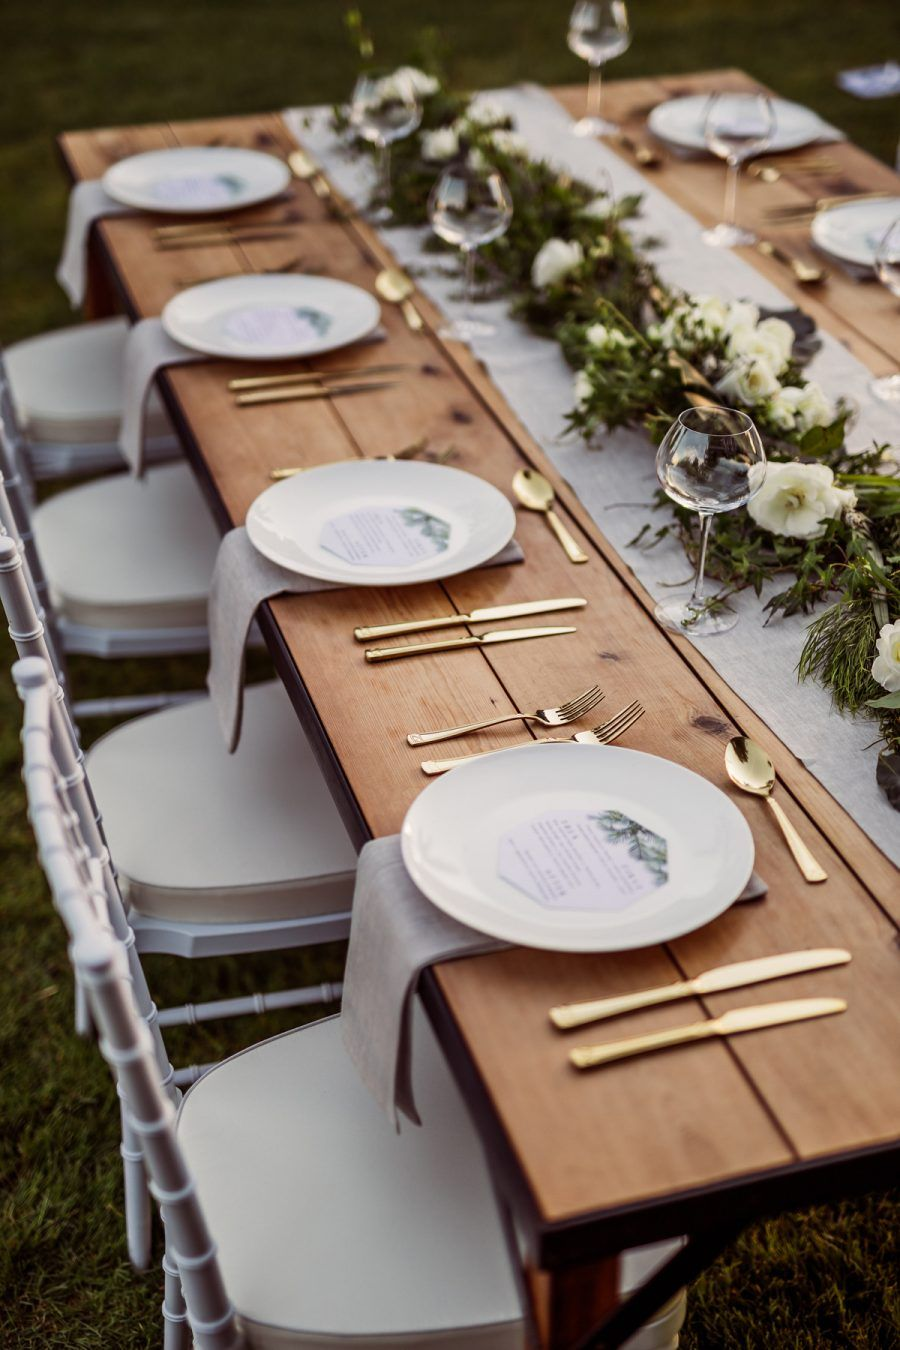 Wonderful 49 Impressive Wedding Table Setting Ideas : elegant table setting ideas - pezcame.com